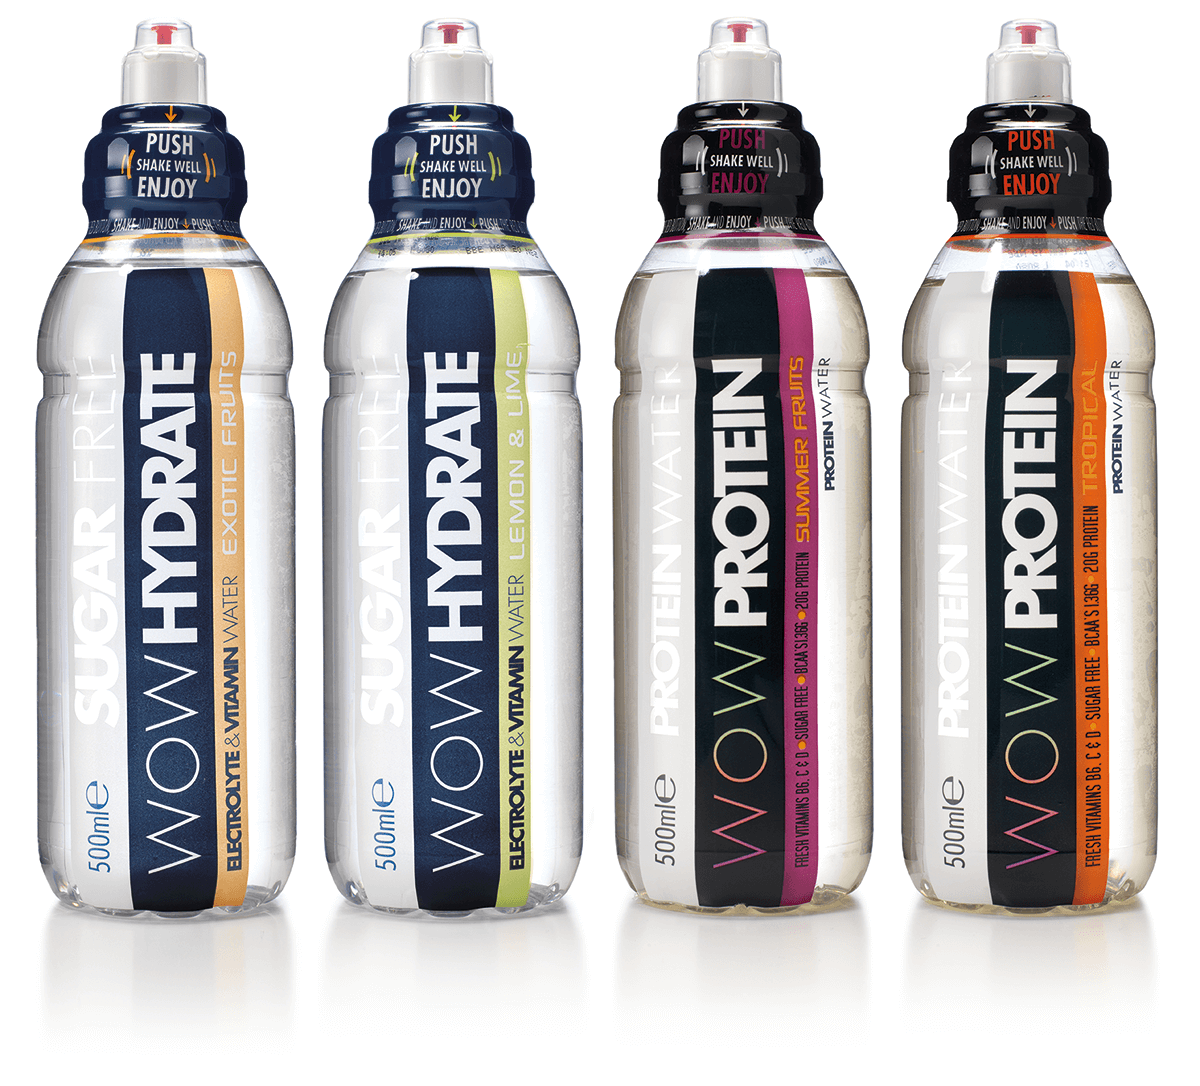 WowHydrate-ProteinDrinks-packshot-photoshoot